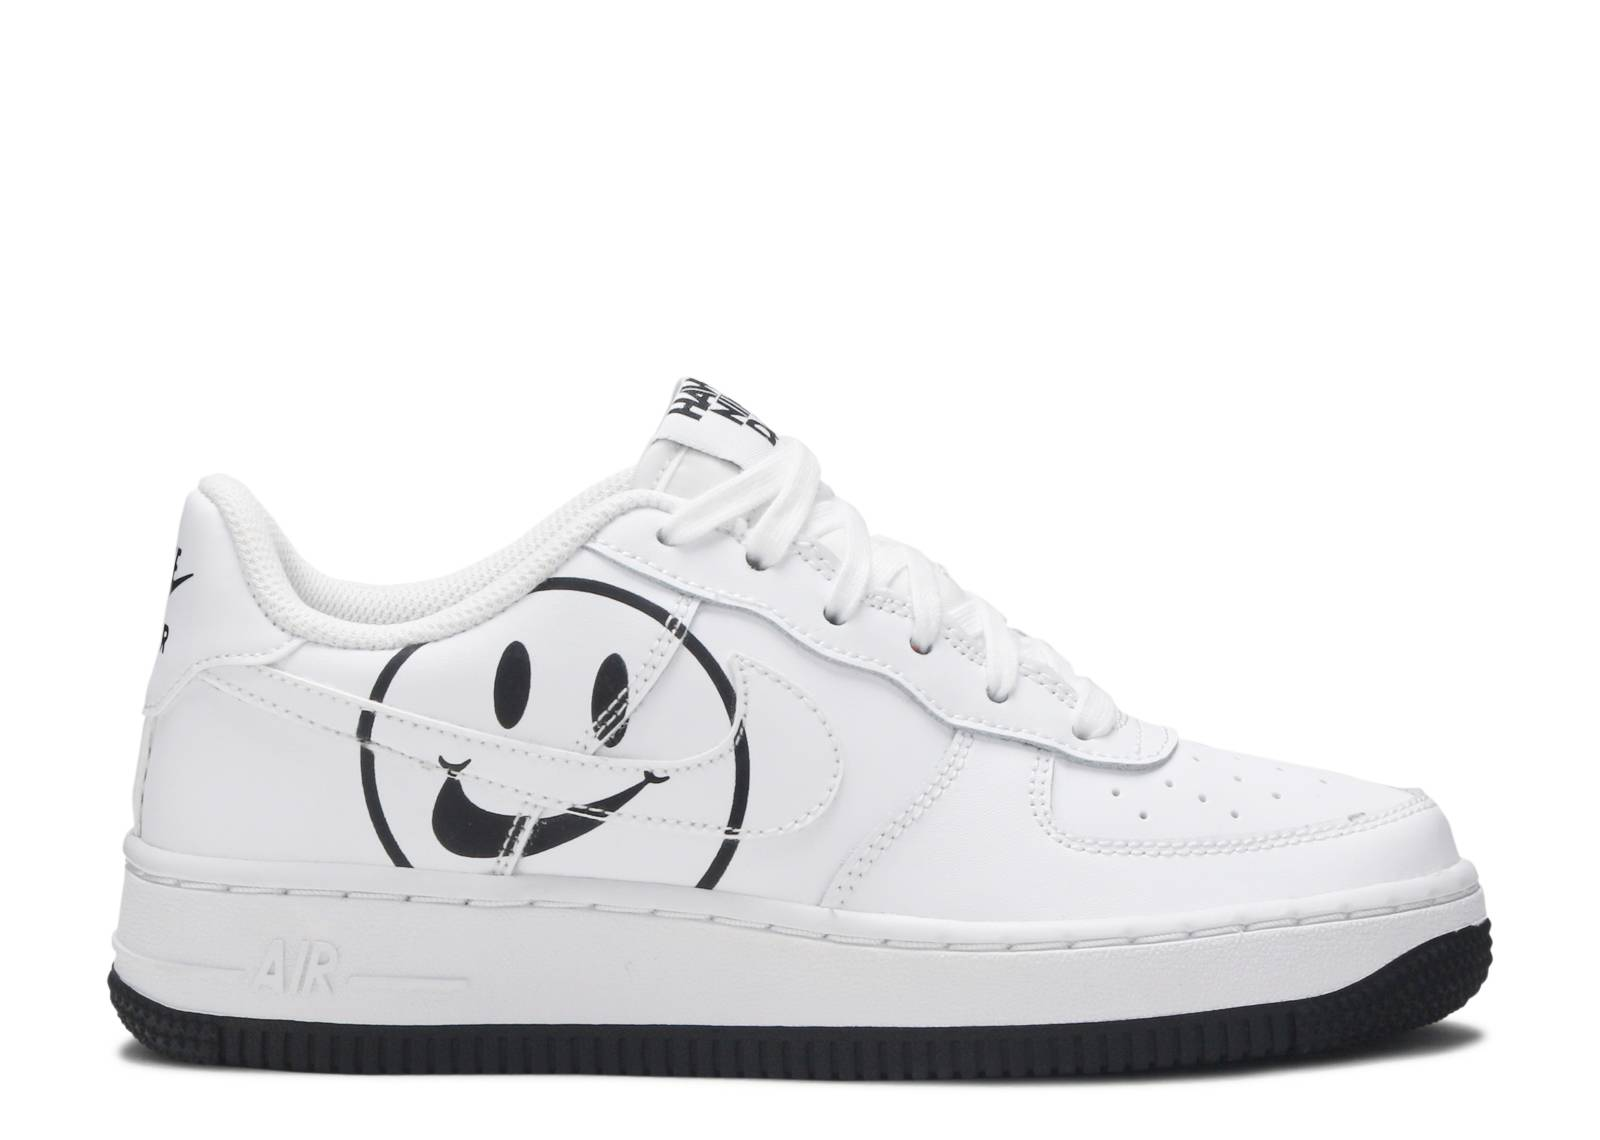 NIKE AIR FORCE 1 LOW 07 LV8 2 GS AV0742 100 HAVE A NIKE DAY